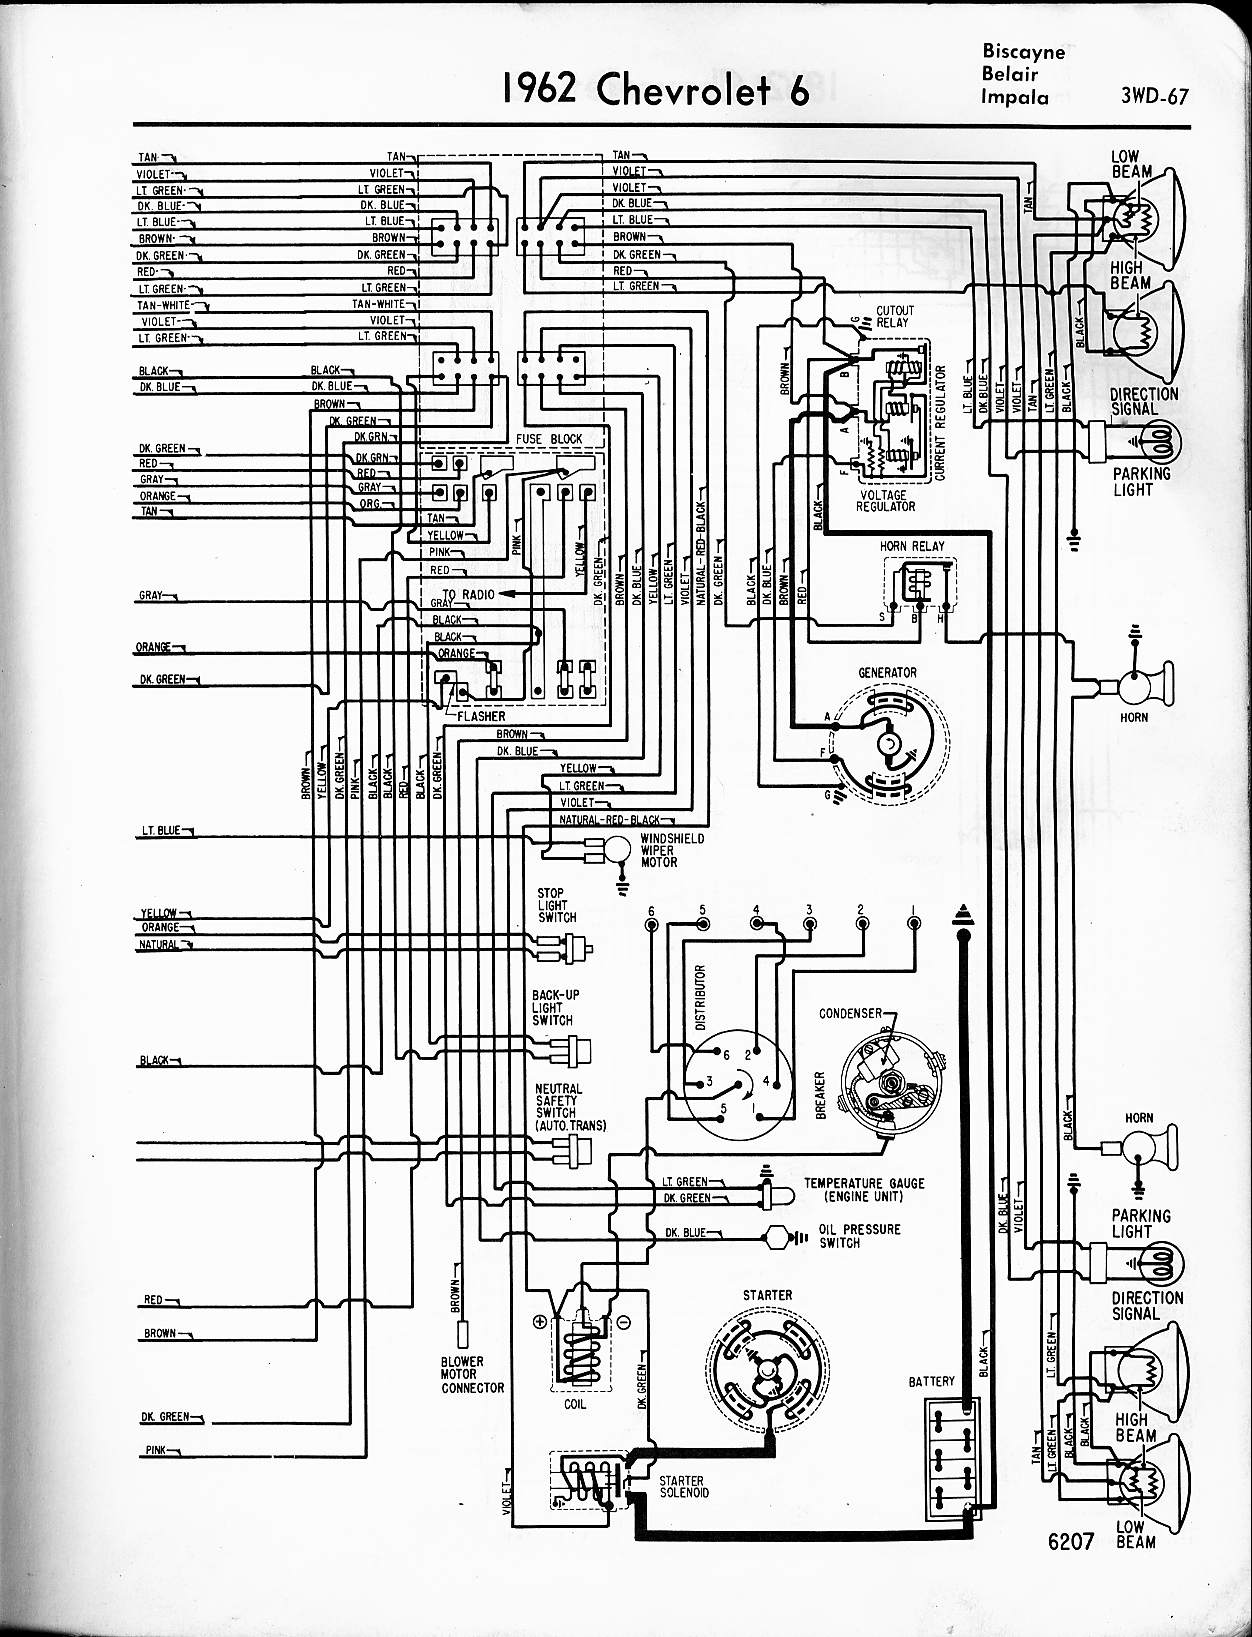 Pickup Truck Inspection Diagram additionally 55 20Chevy 20index as well 71776 Dome Light 55 Chevy Bel Air Doesn T Work Dashboard Lights furthermore Wiring moreover 1957 Chevy Truck Turn Signal Wiring Diagram Parking L  Wire. on 1957 chevrolet ignition switch wiring diagram